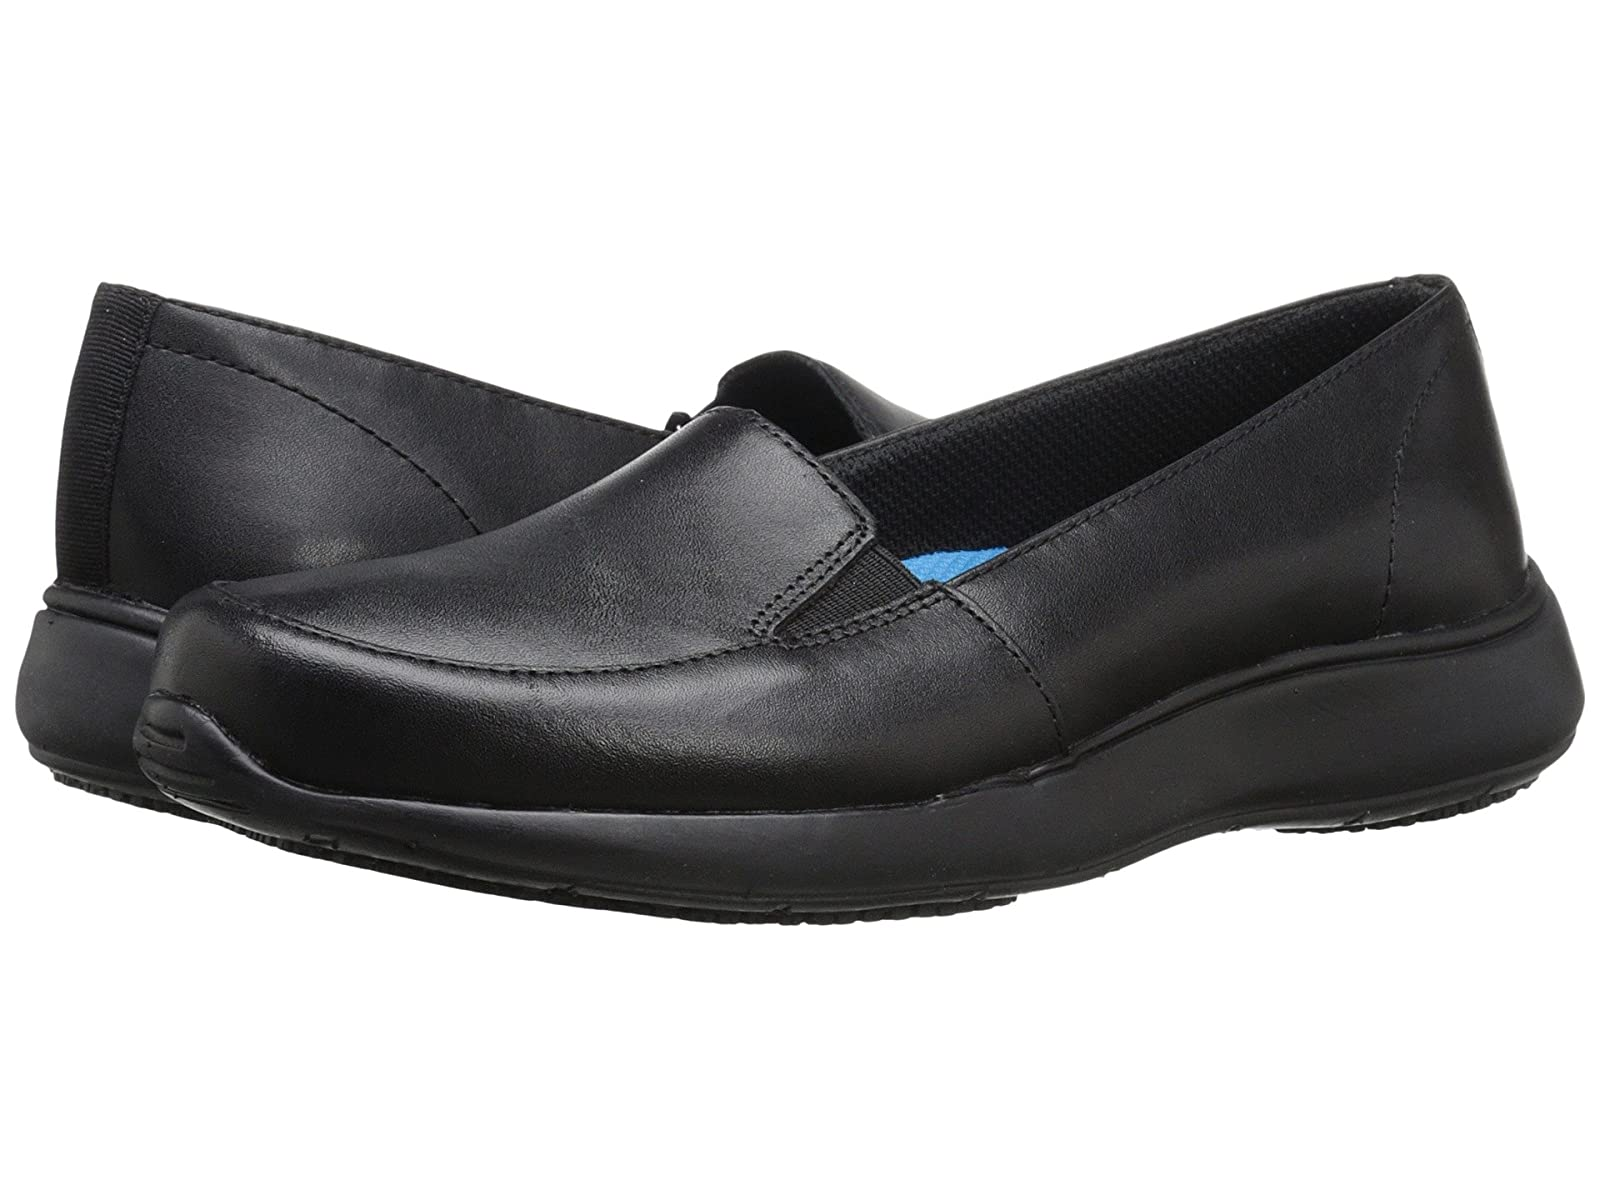 Dr. Scholl's Work LauriCheap and distinctive eye-catching shoes